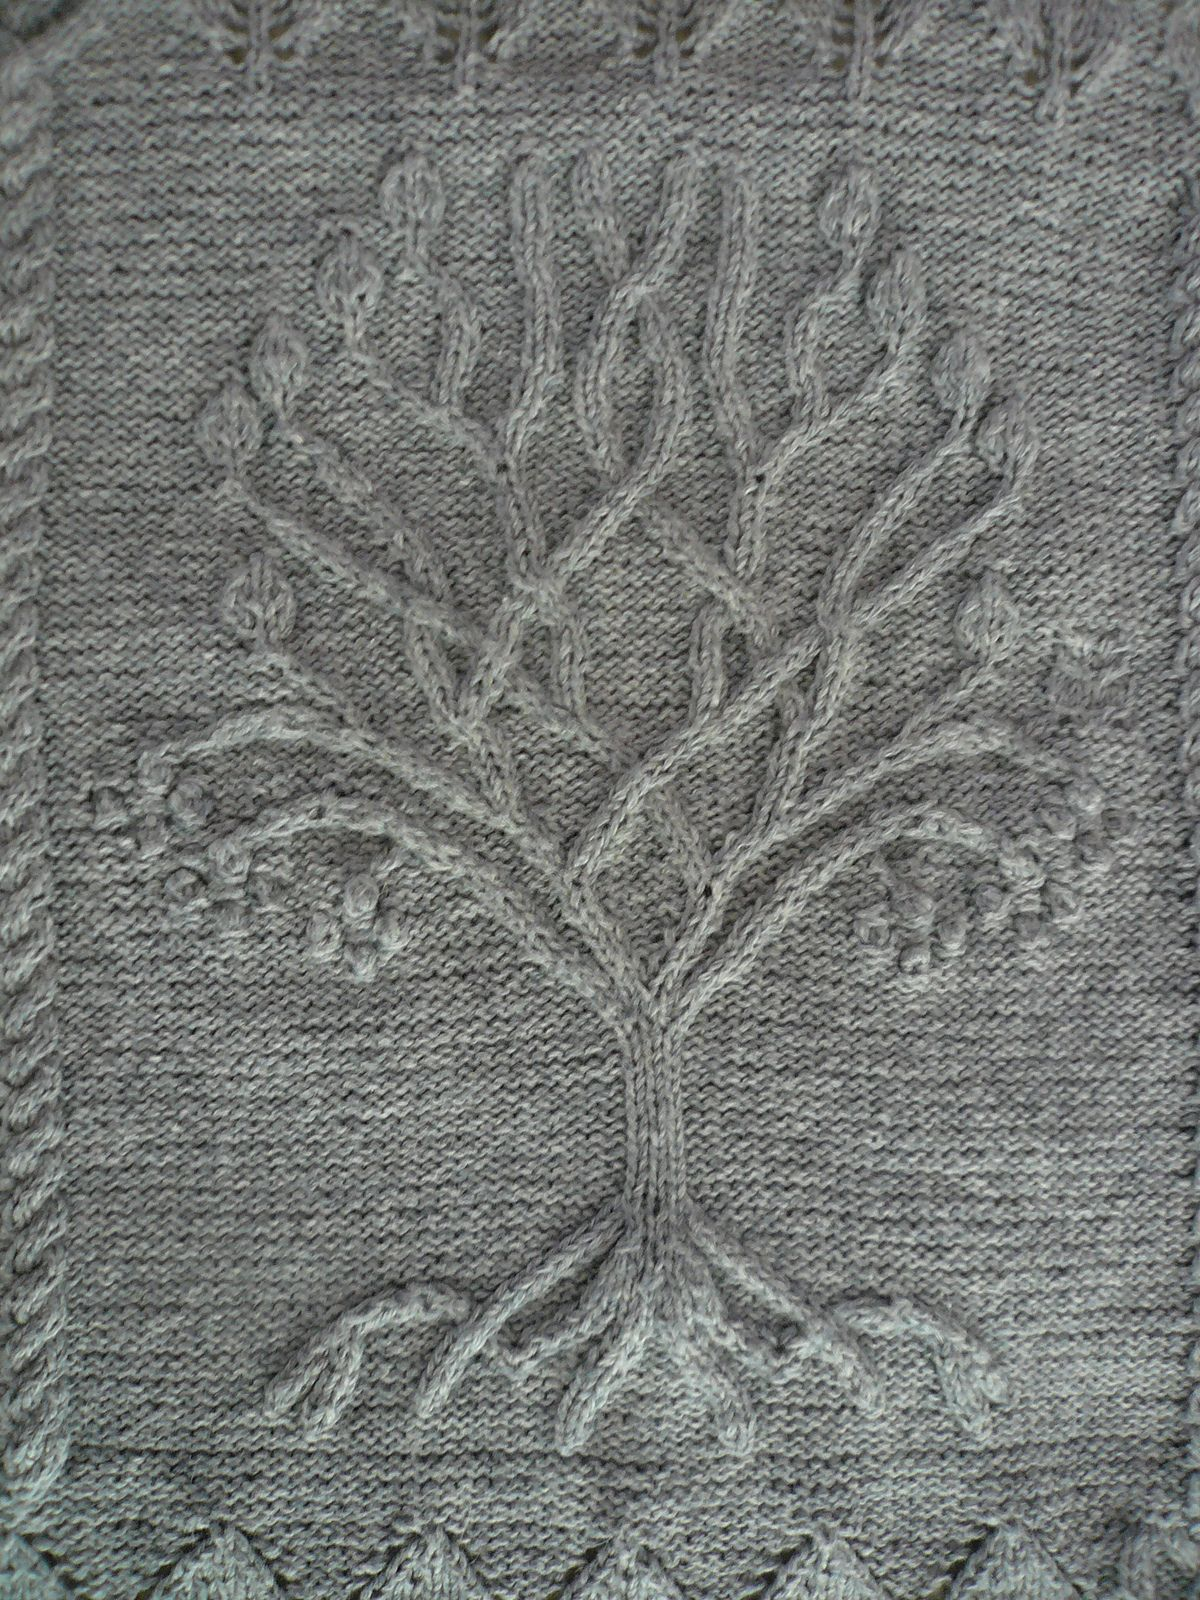 Ravelry: Tree pattern by Ariel Barton | Knitting | Pinterest ...